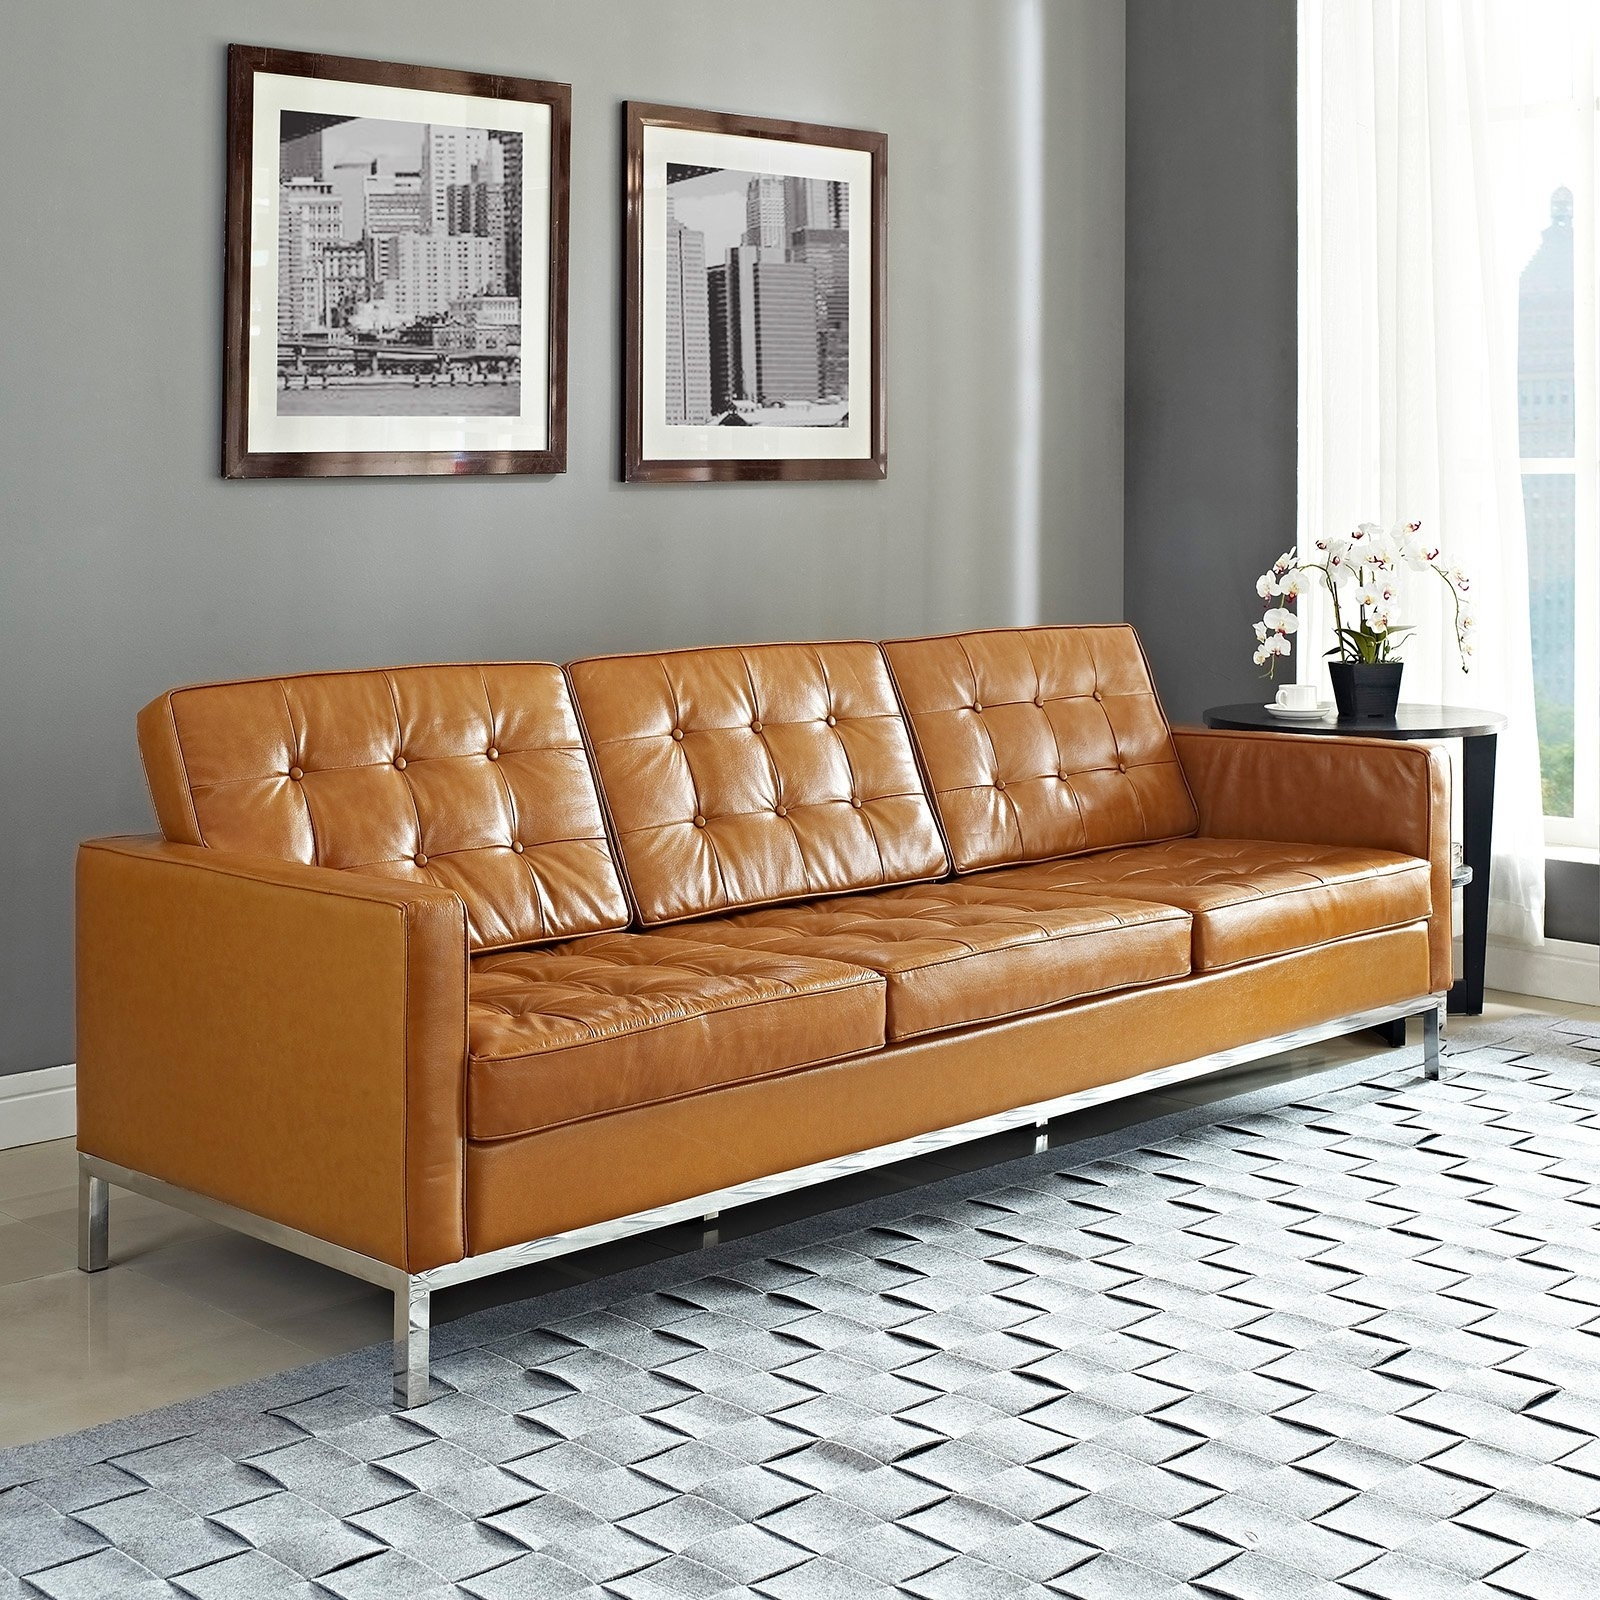 Light Tan Leather Sofas With Regard To 2019 Modway Loft Leather Sofa (View 8 of 20)